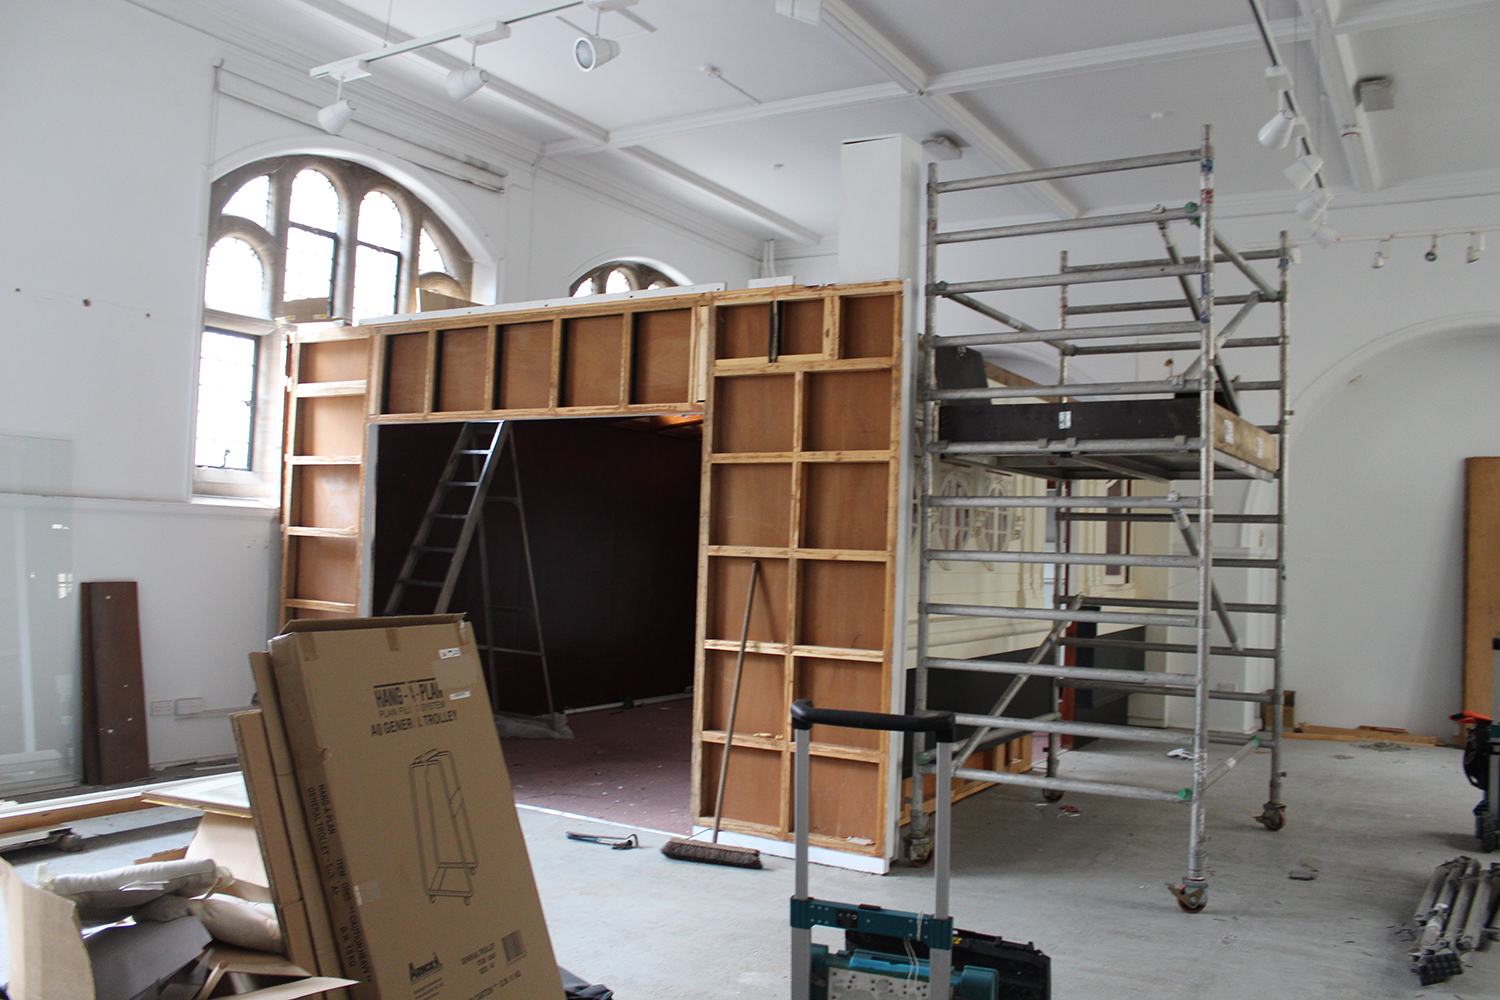 A photograph of the barge in the old museum being deconstructed.